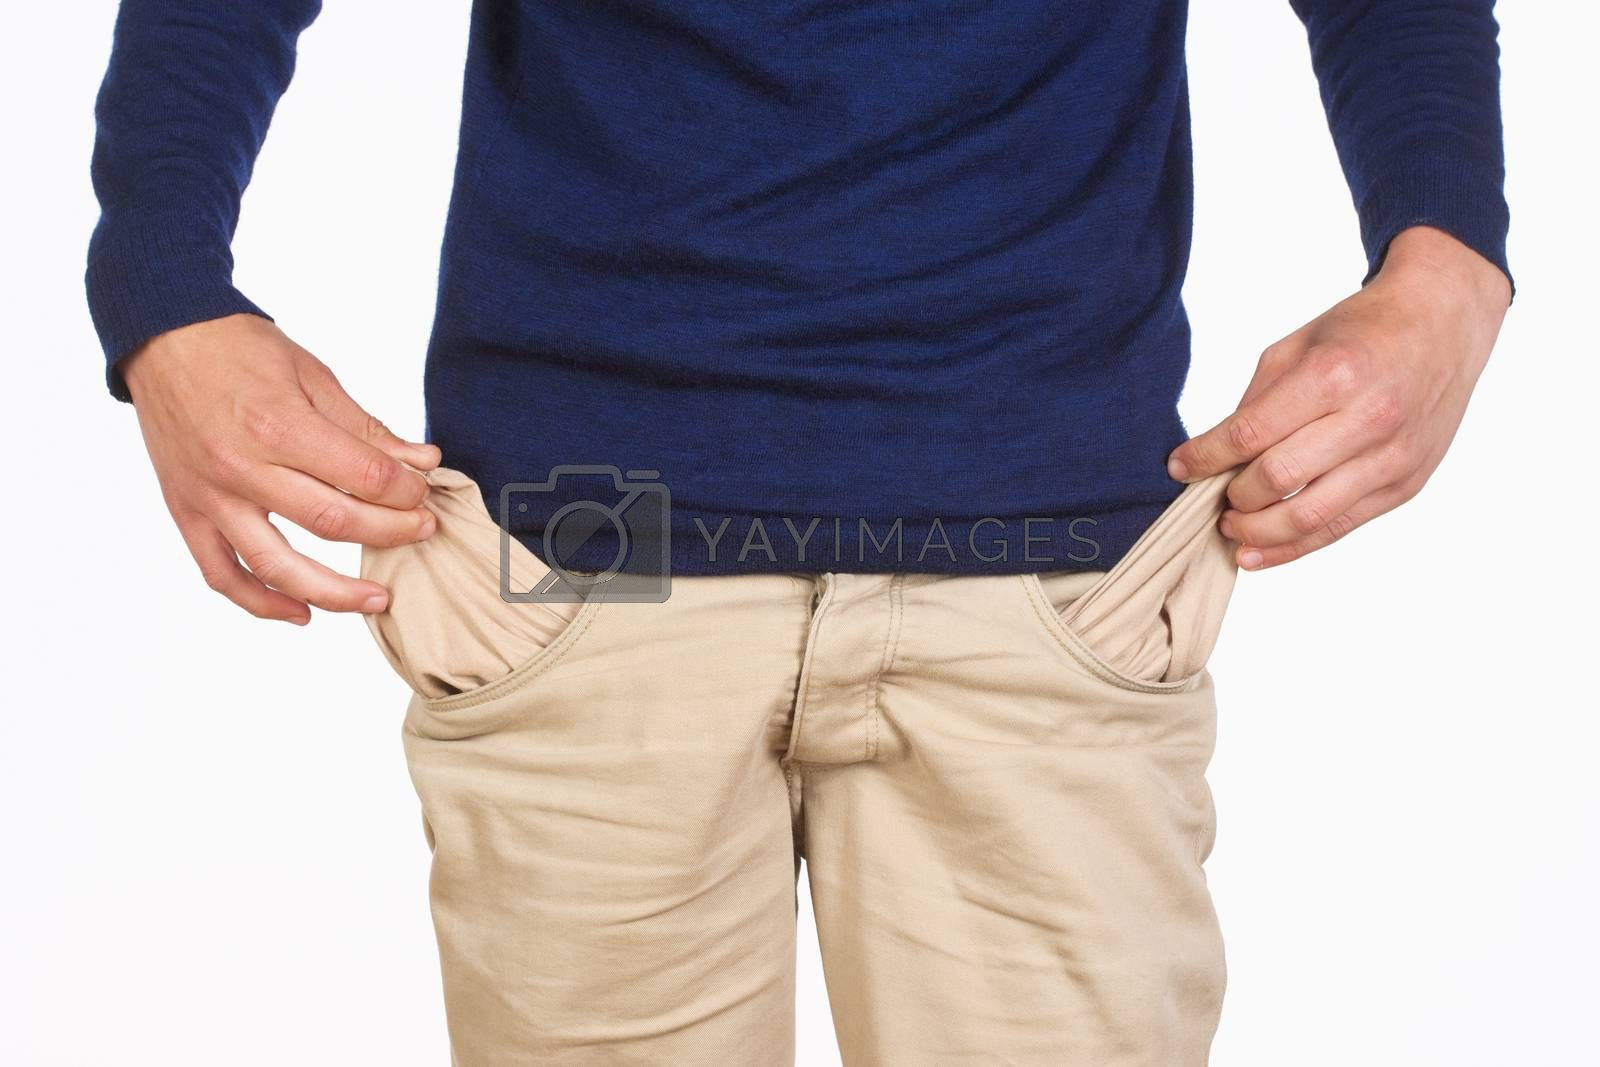 Royalty free image of Man Searching for Cash in his Pockets by courtyardpix